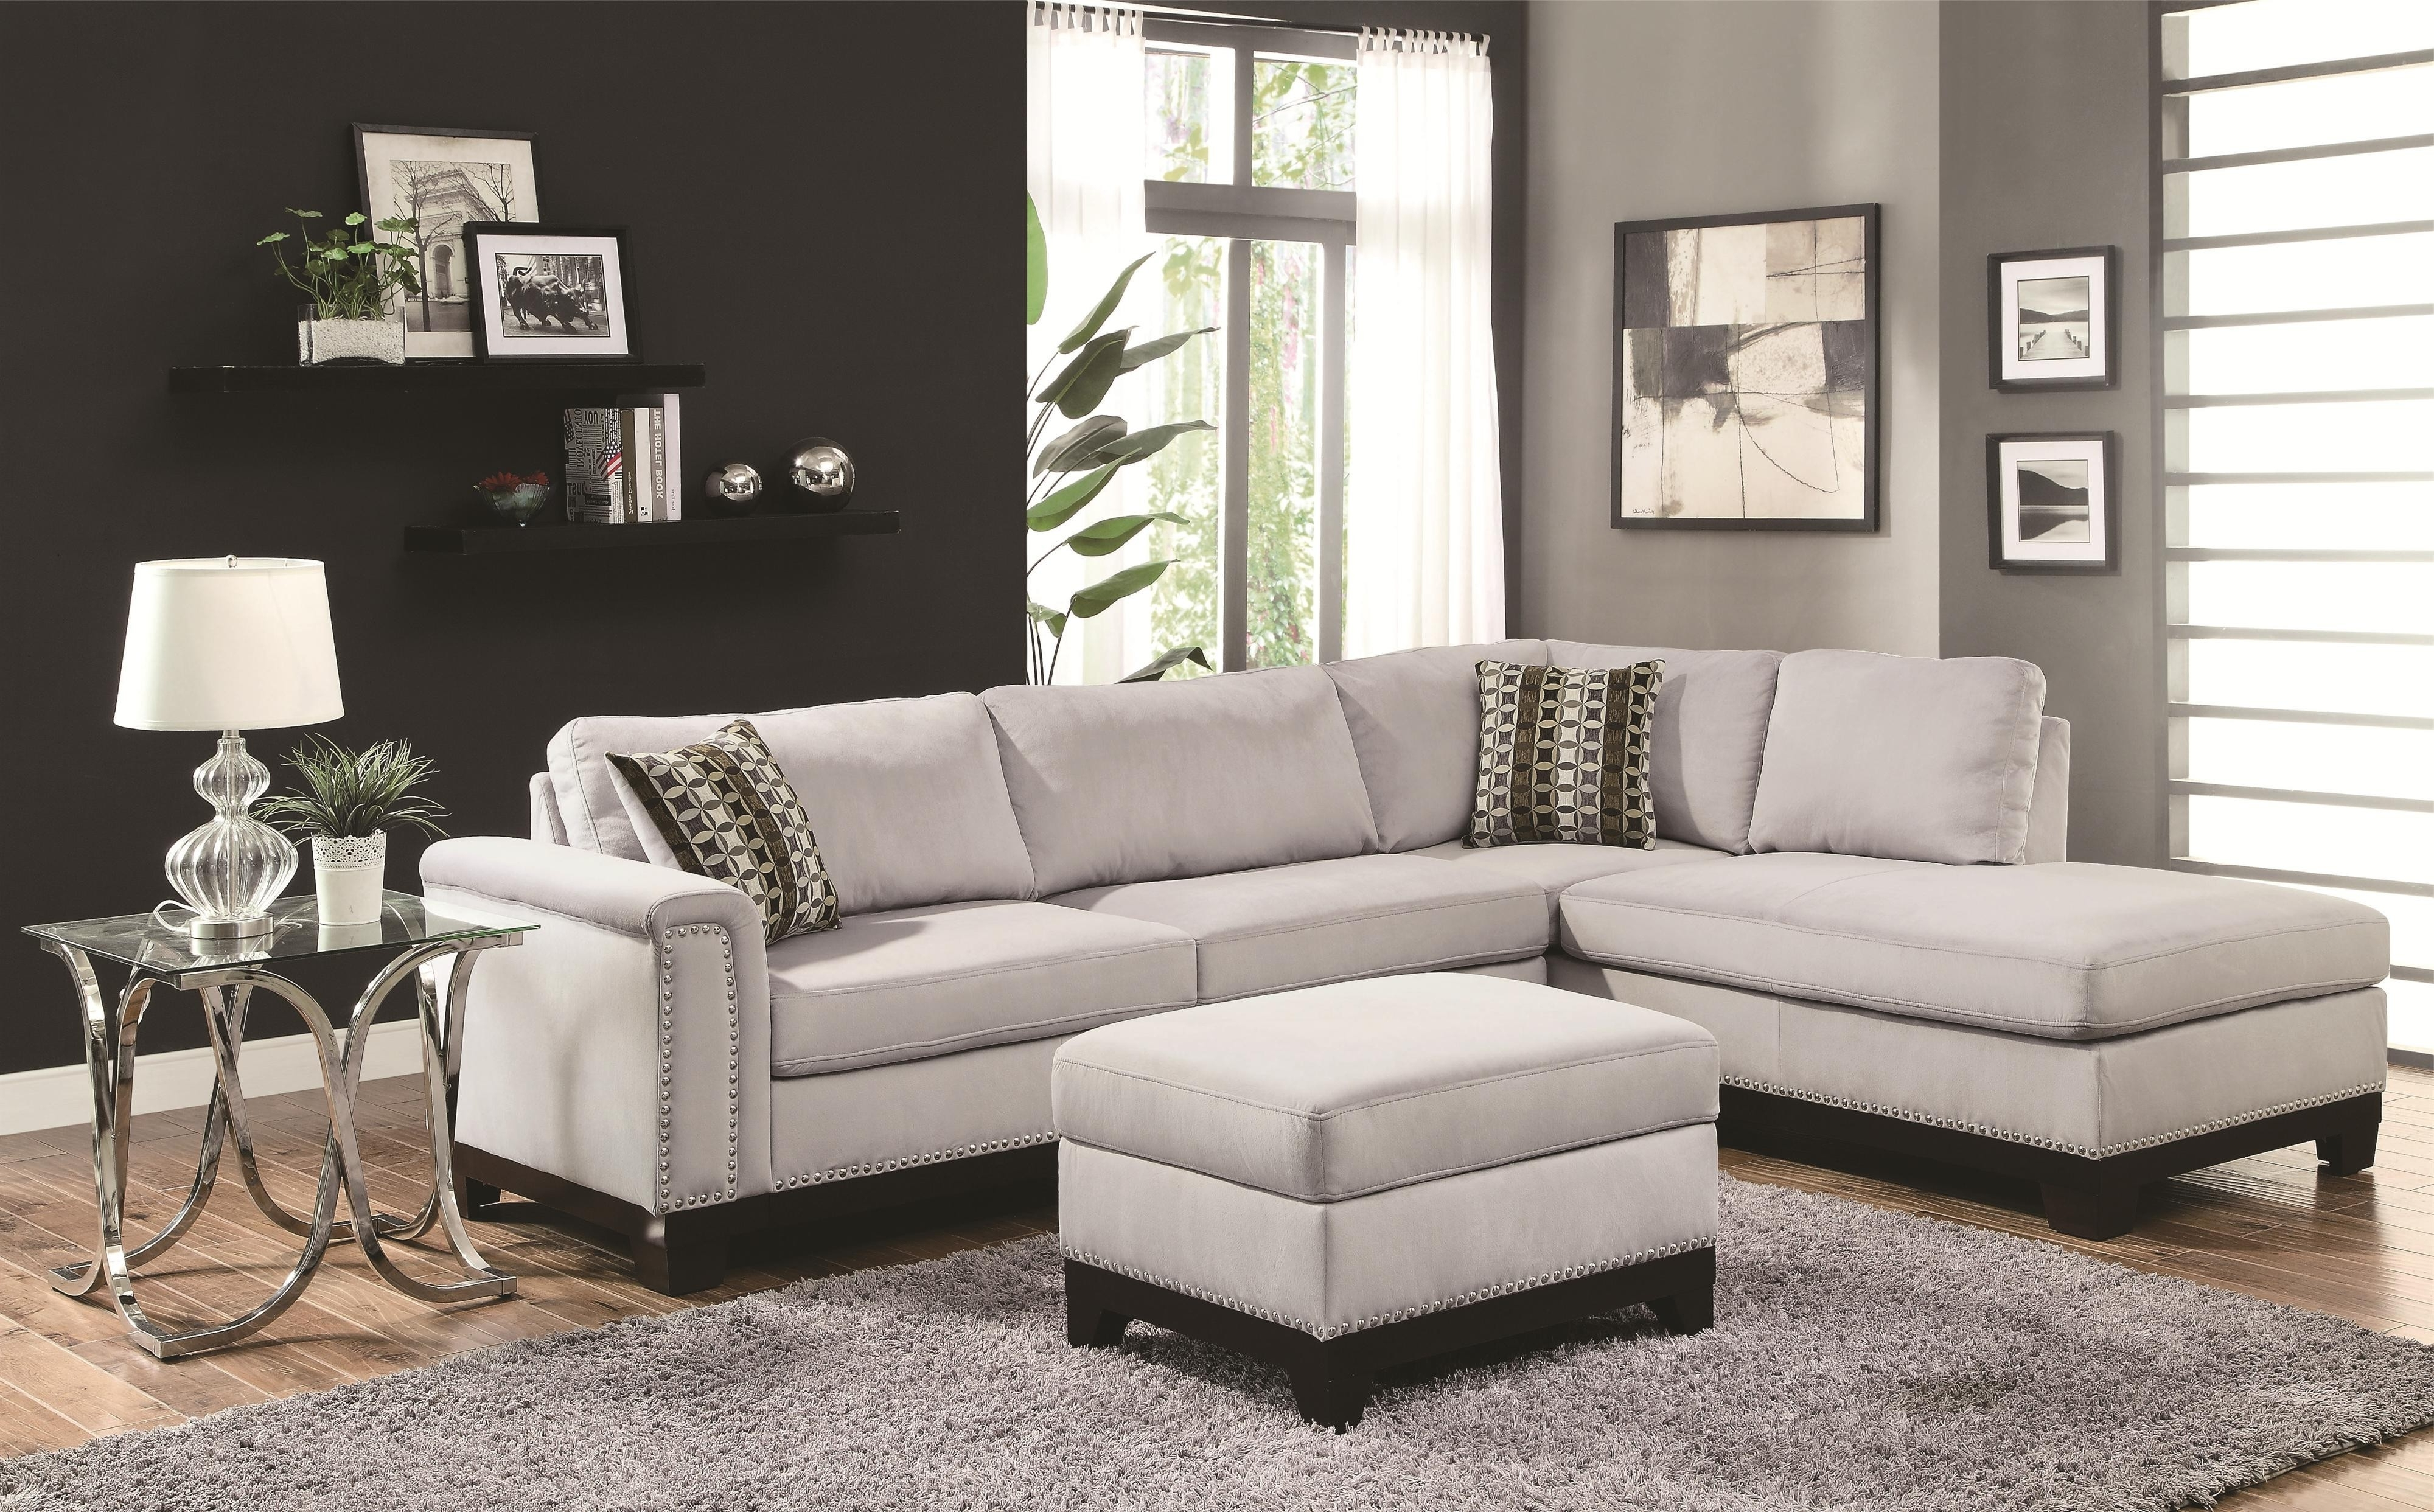 Famous Off Agata Light Grey Sectional Sofas Gray Sofa Modern Fabric Throughout Quebec Sectional Sofas (View 3 of 20)